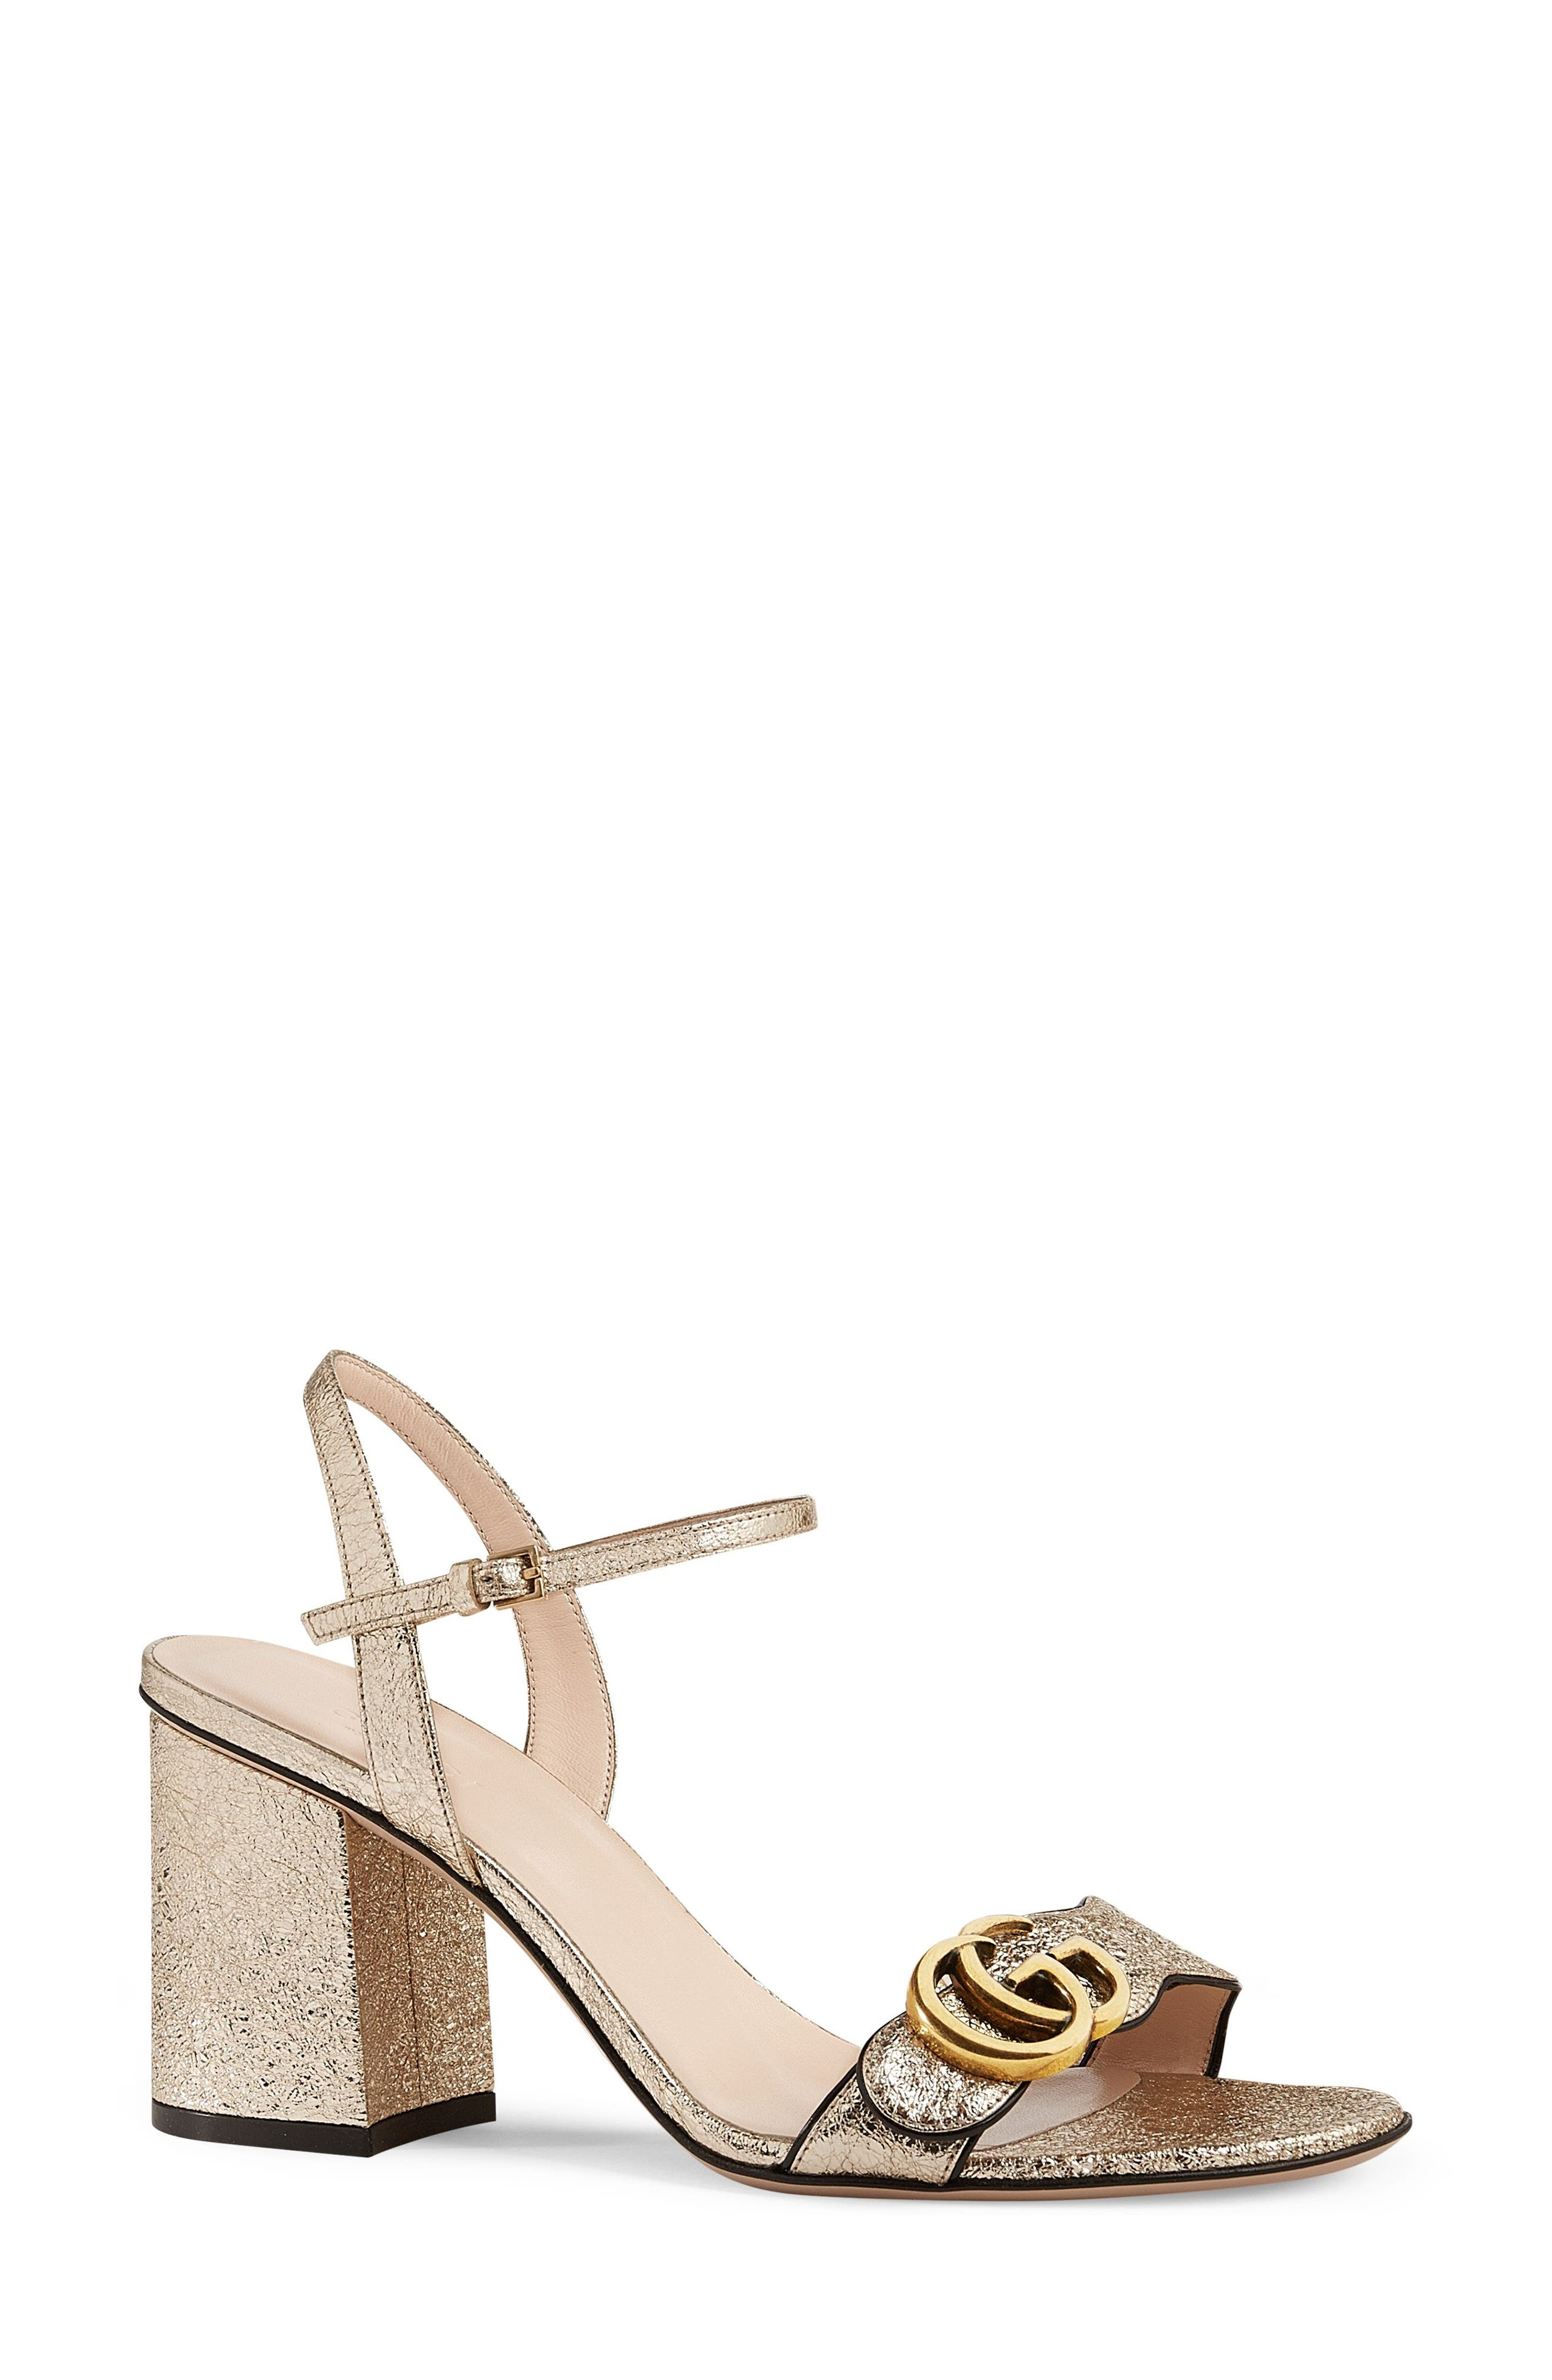 GG Marmont Sandal,                             Alternate thumbnail 3, color,                             METALLIC GOLD